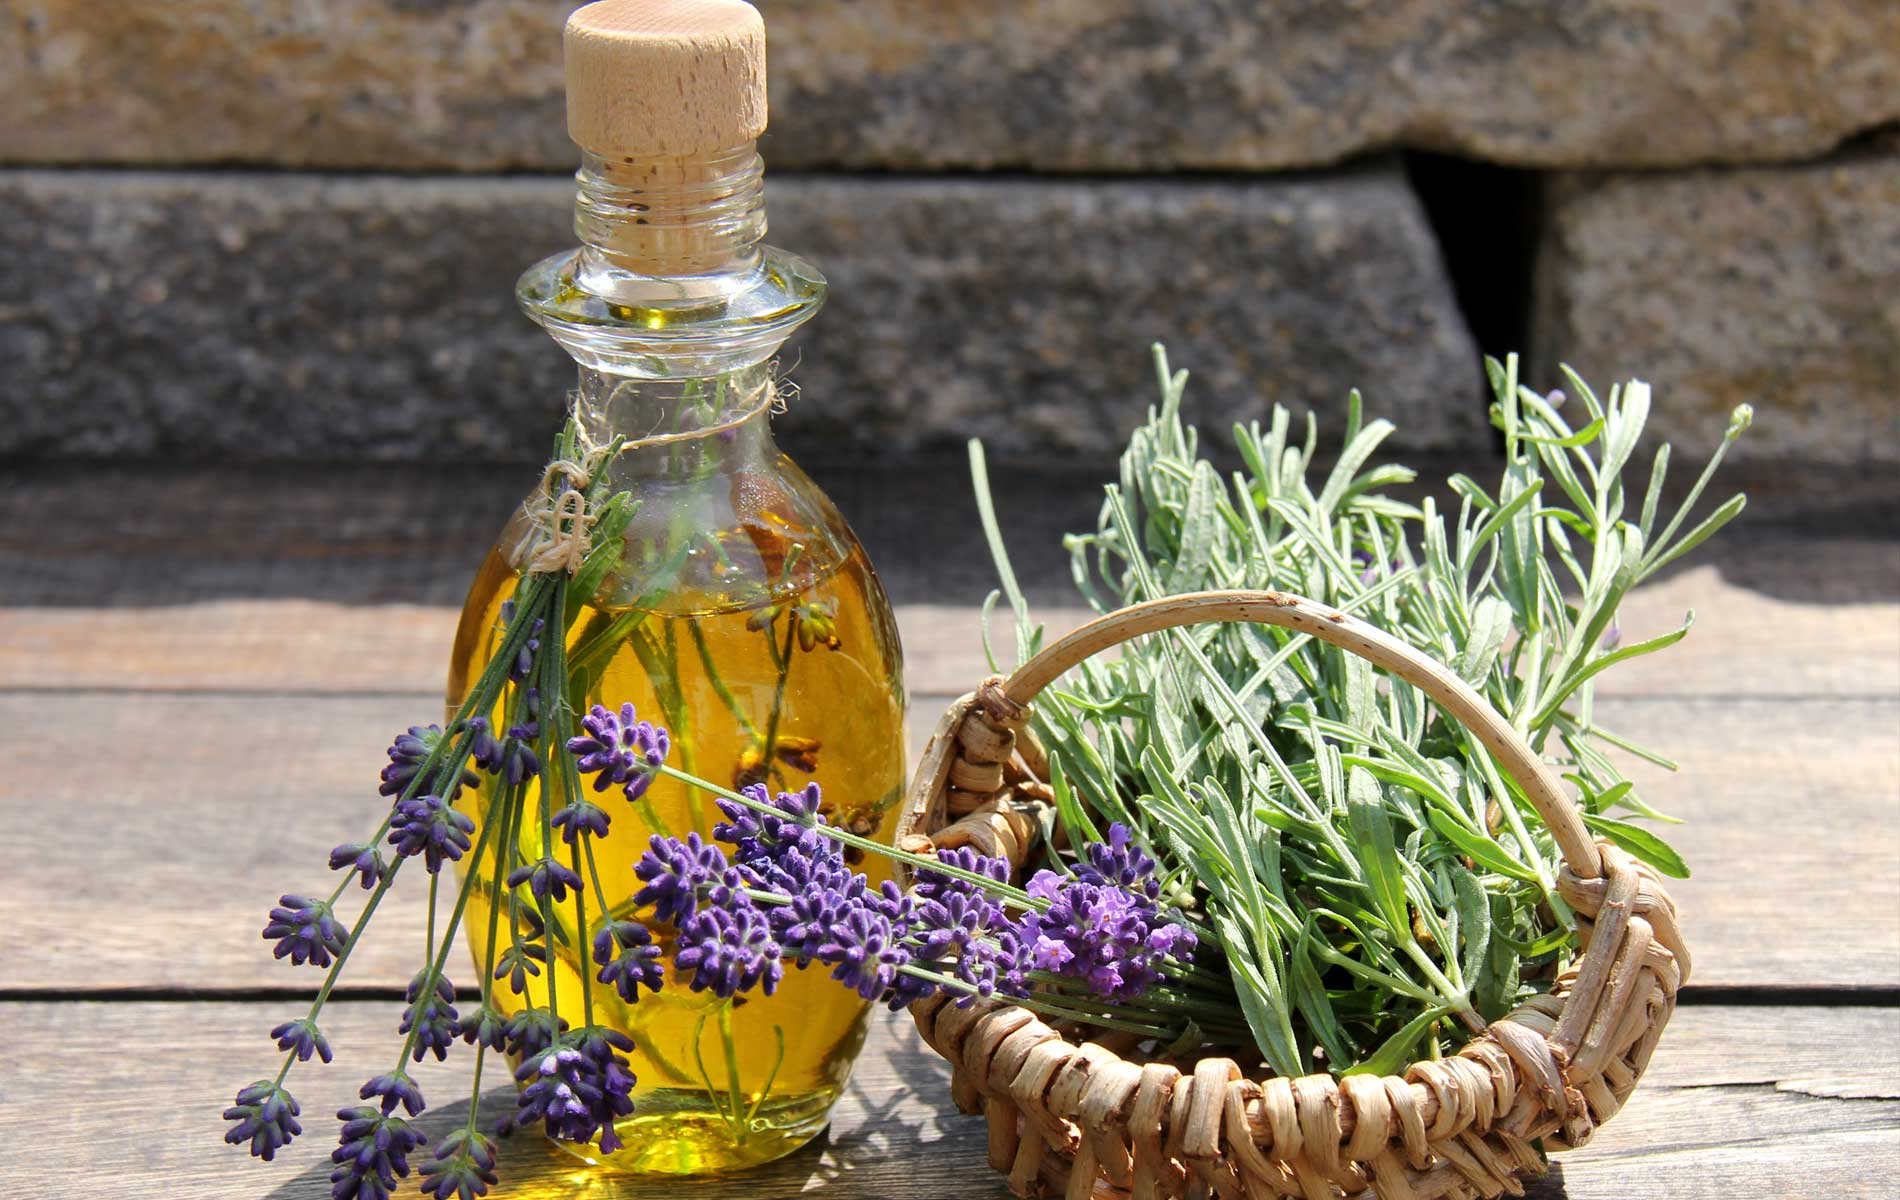 Lavender and algae based anti-stress ritual